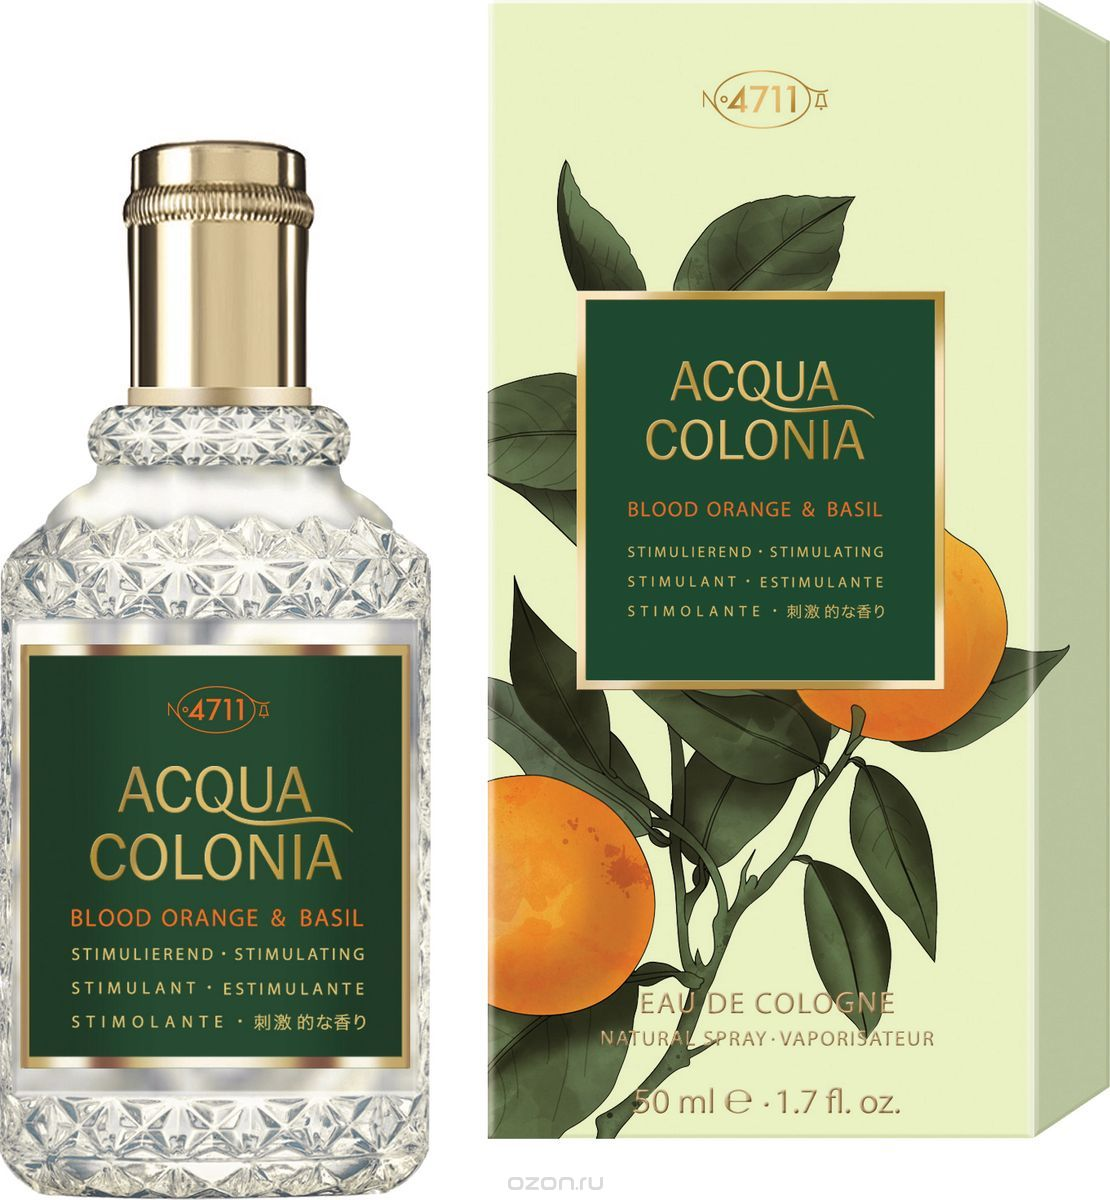 Одеколон Maurer and Wirtz 4711 Acqua Colonia Blood Orange and Basil унисекс  - edc 50 ml